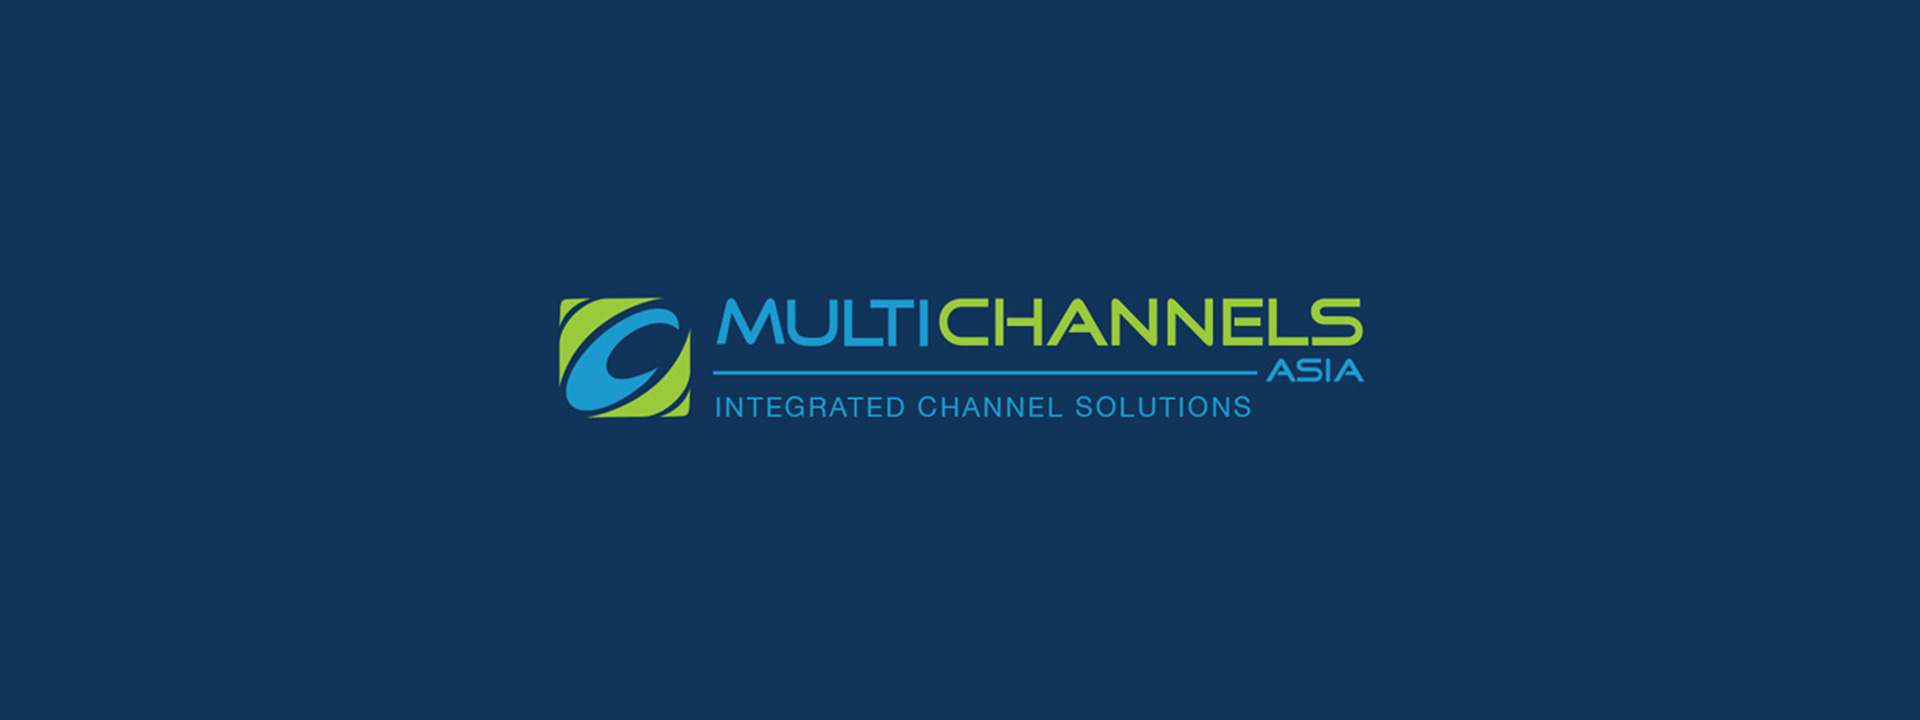 multi channels asia identity design technology production